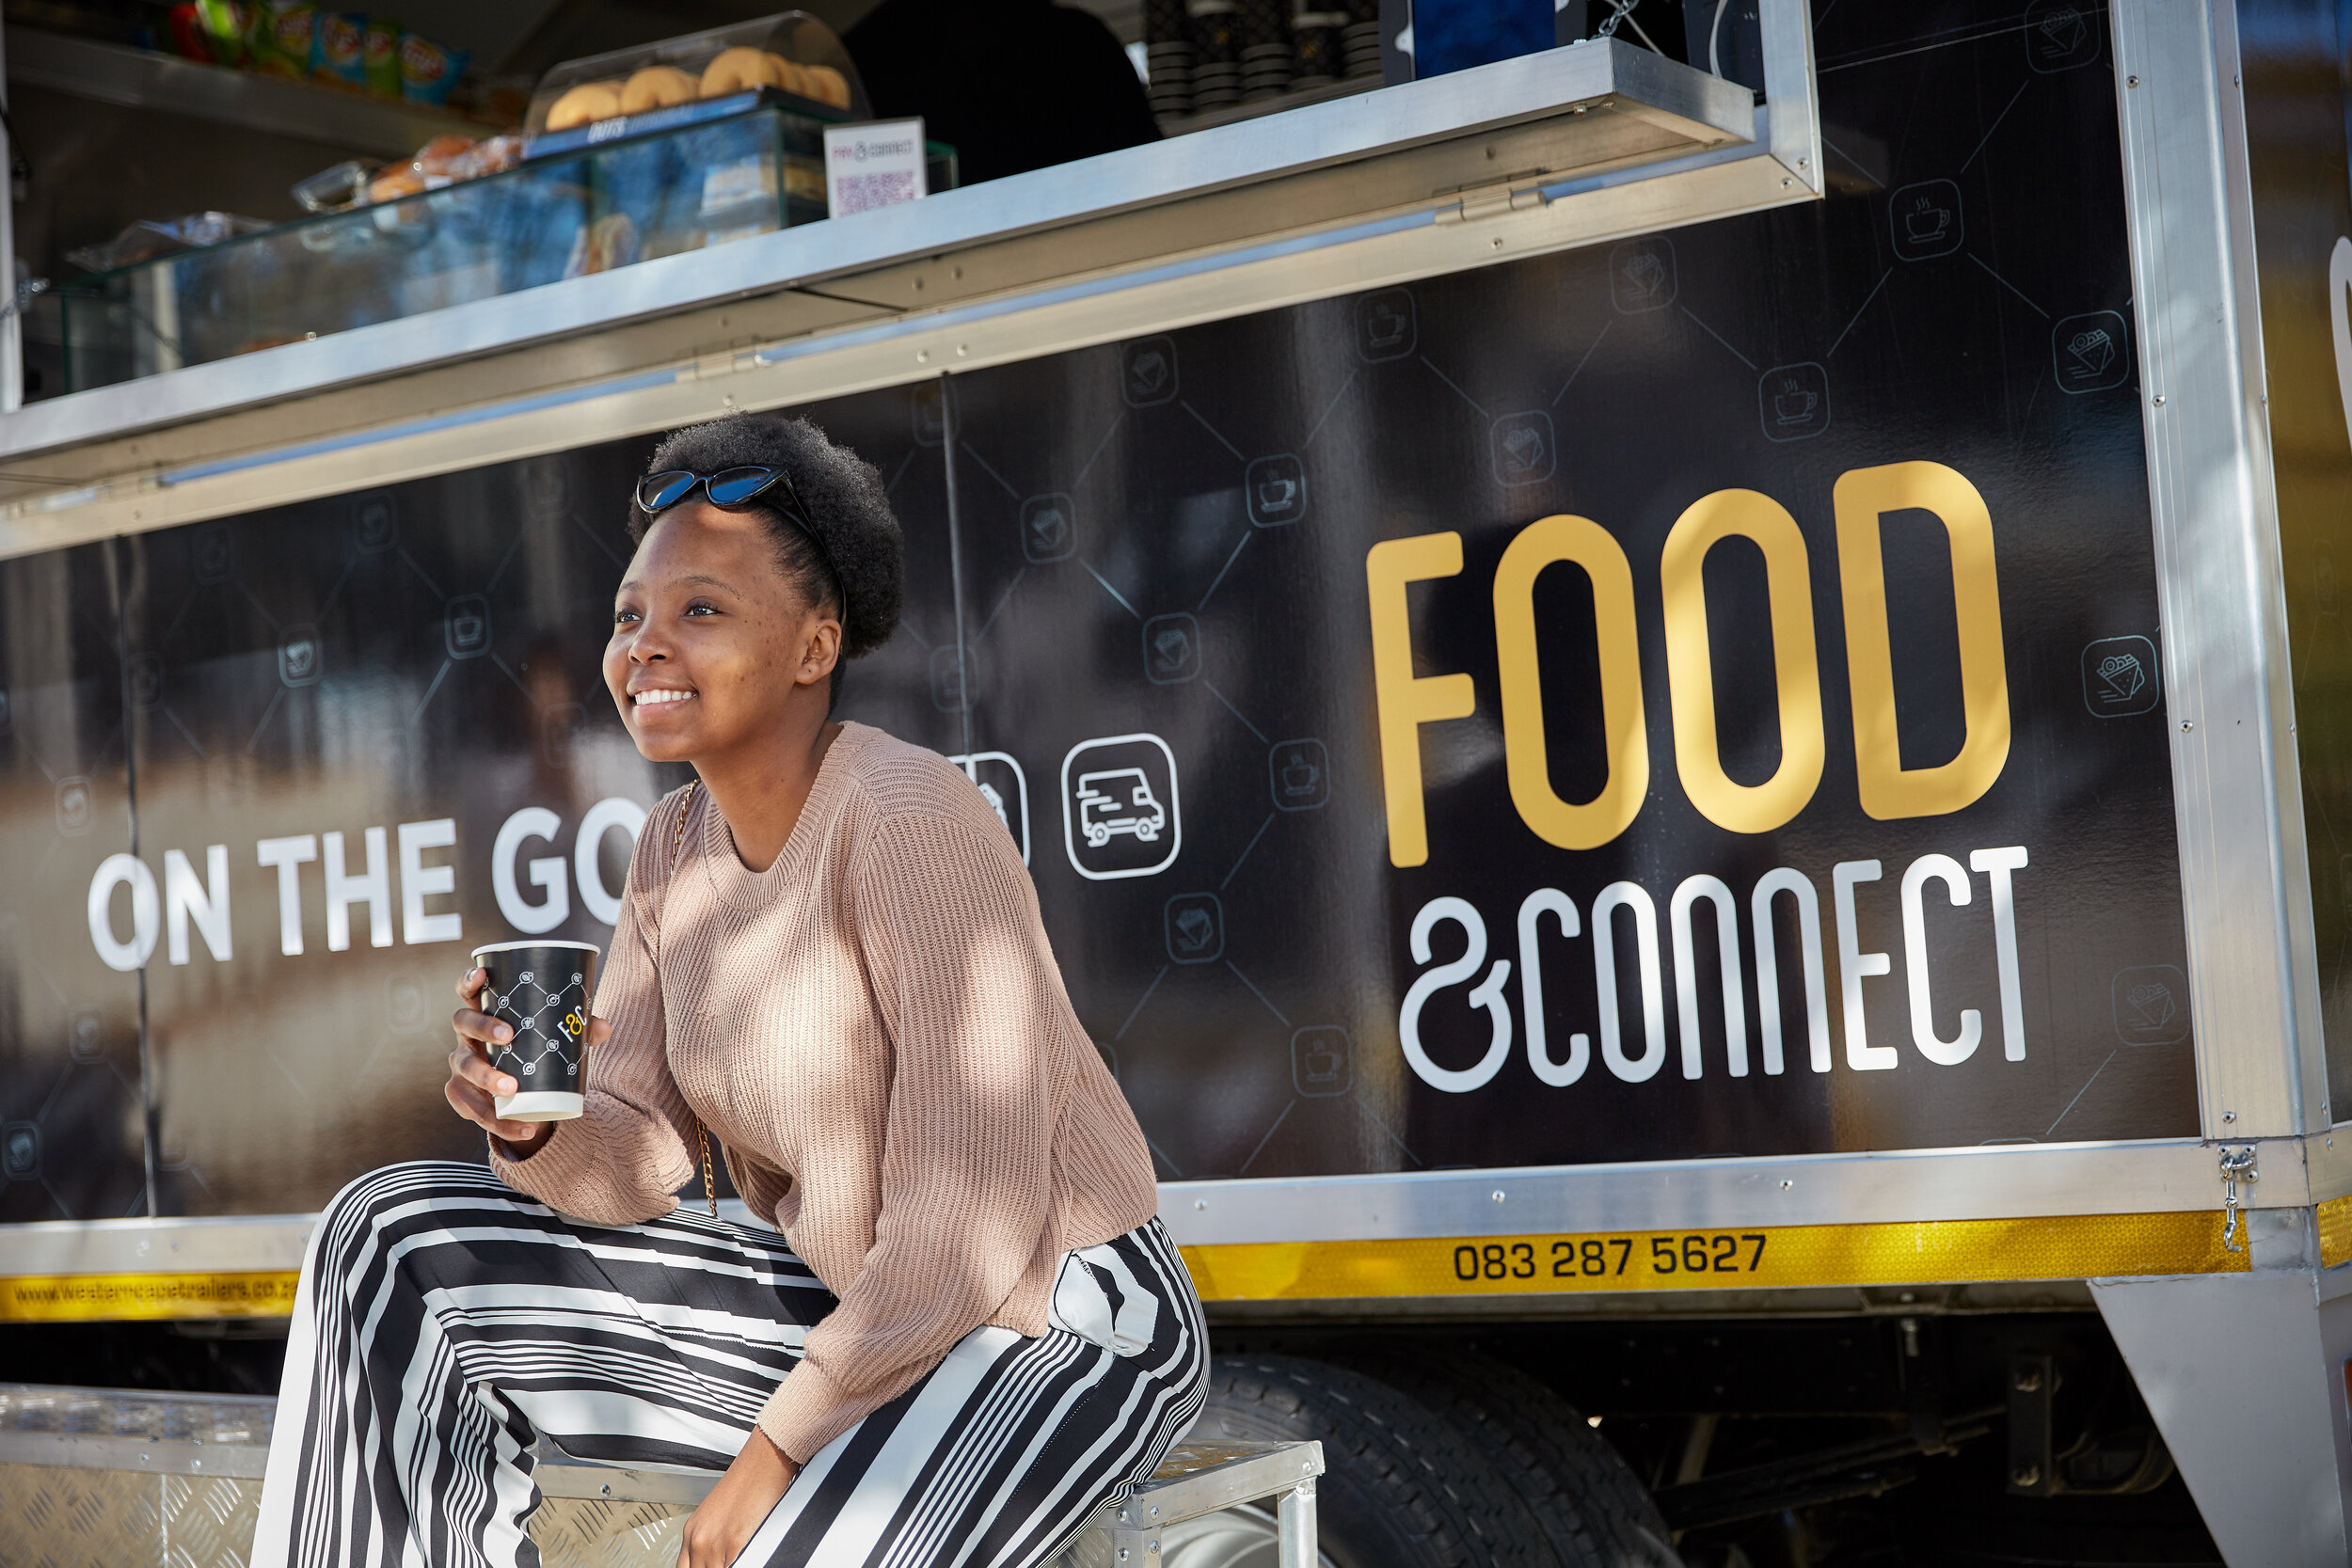 Food & Connect